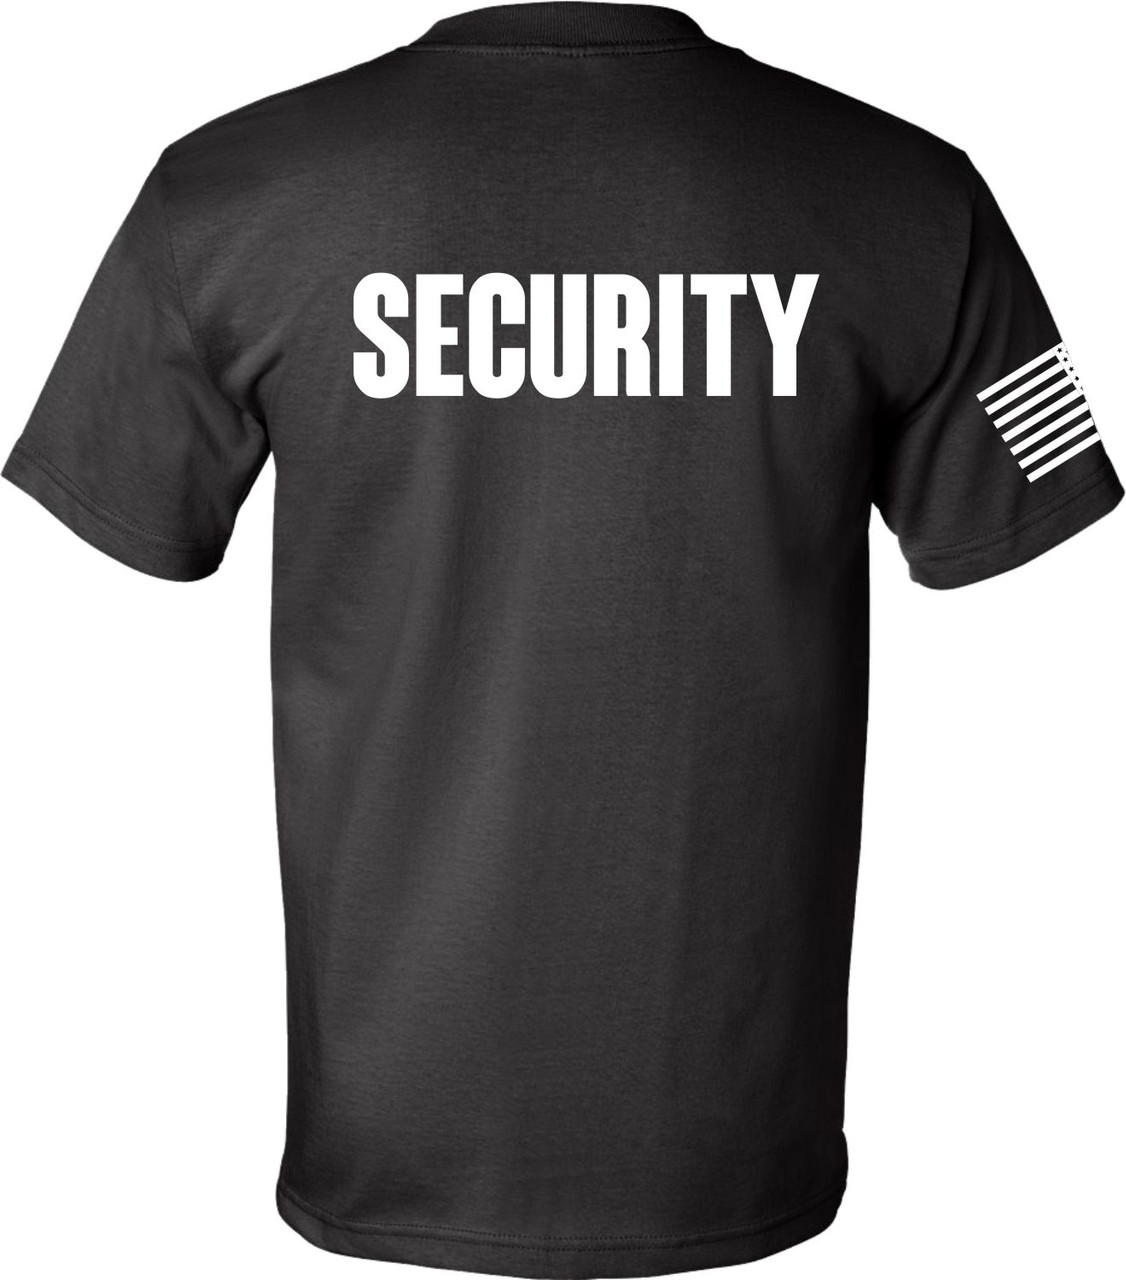 Black Security Tee with USA Flag made in America